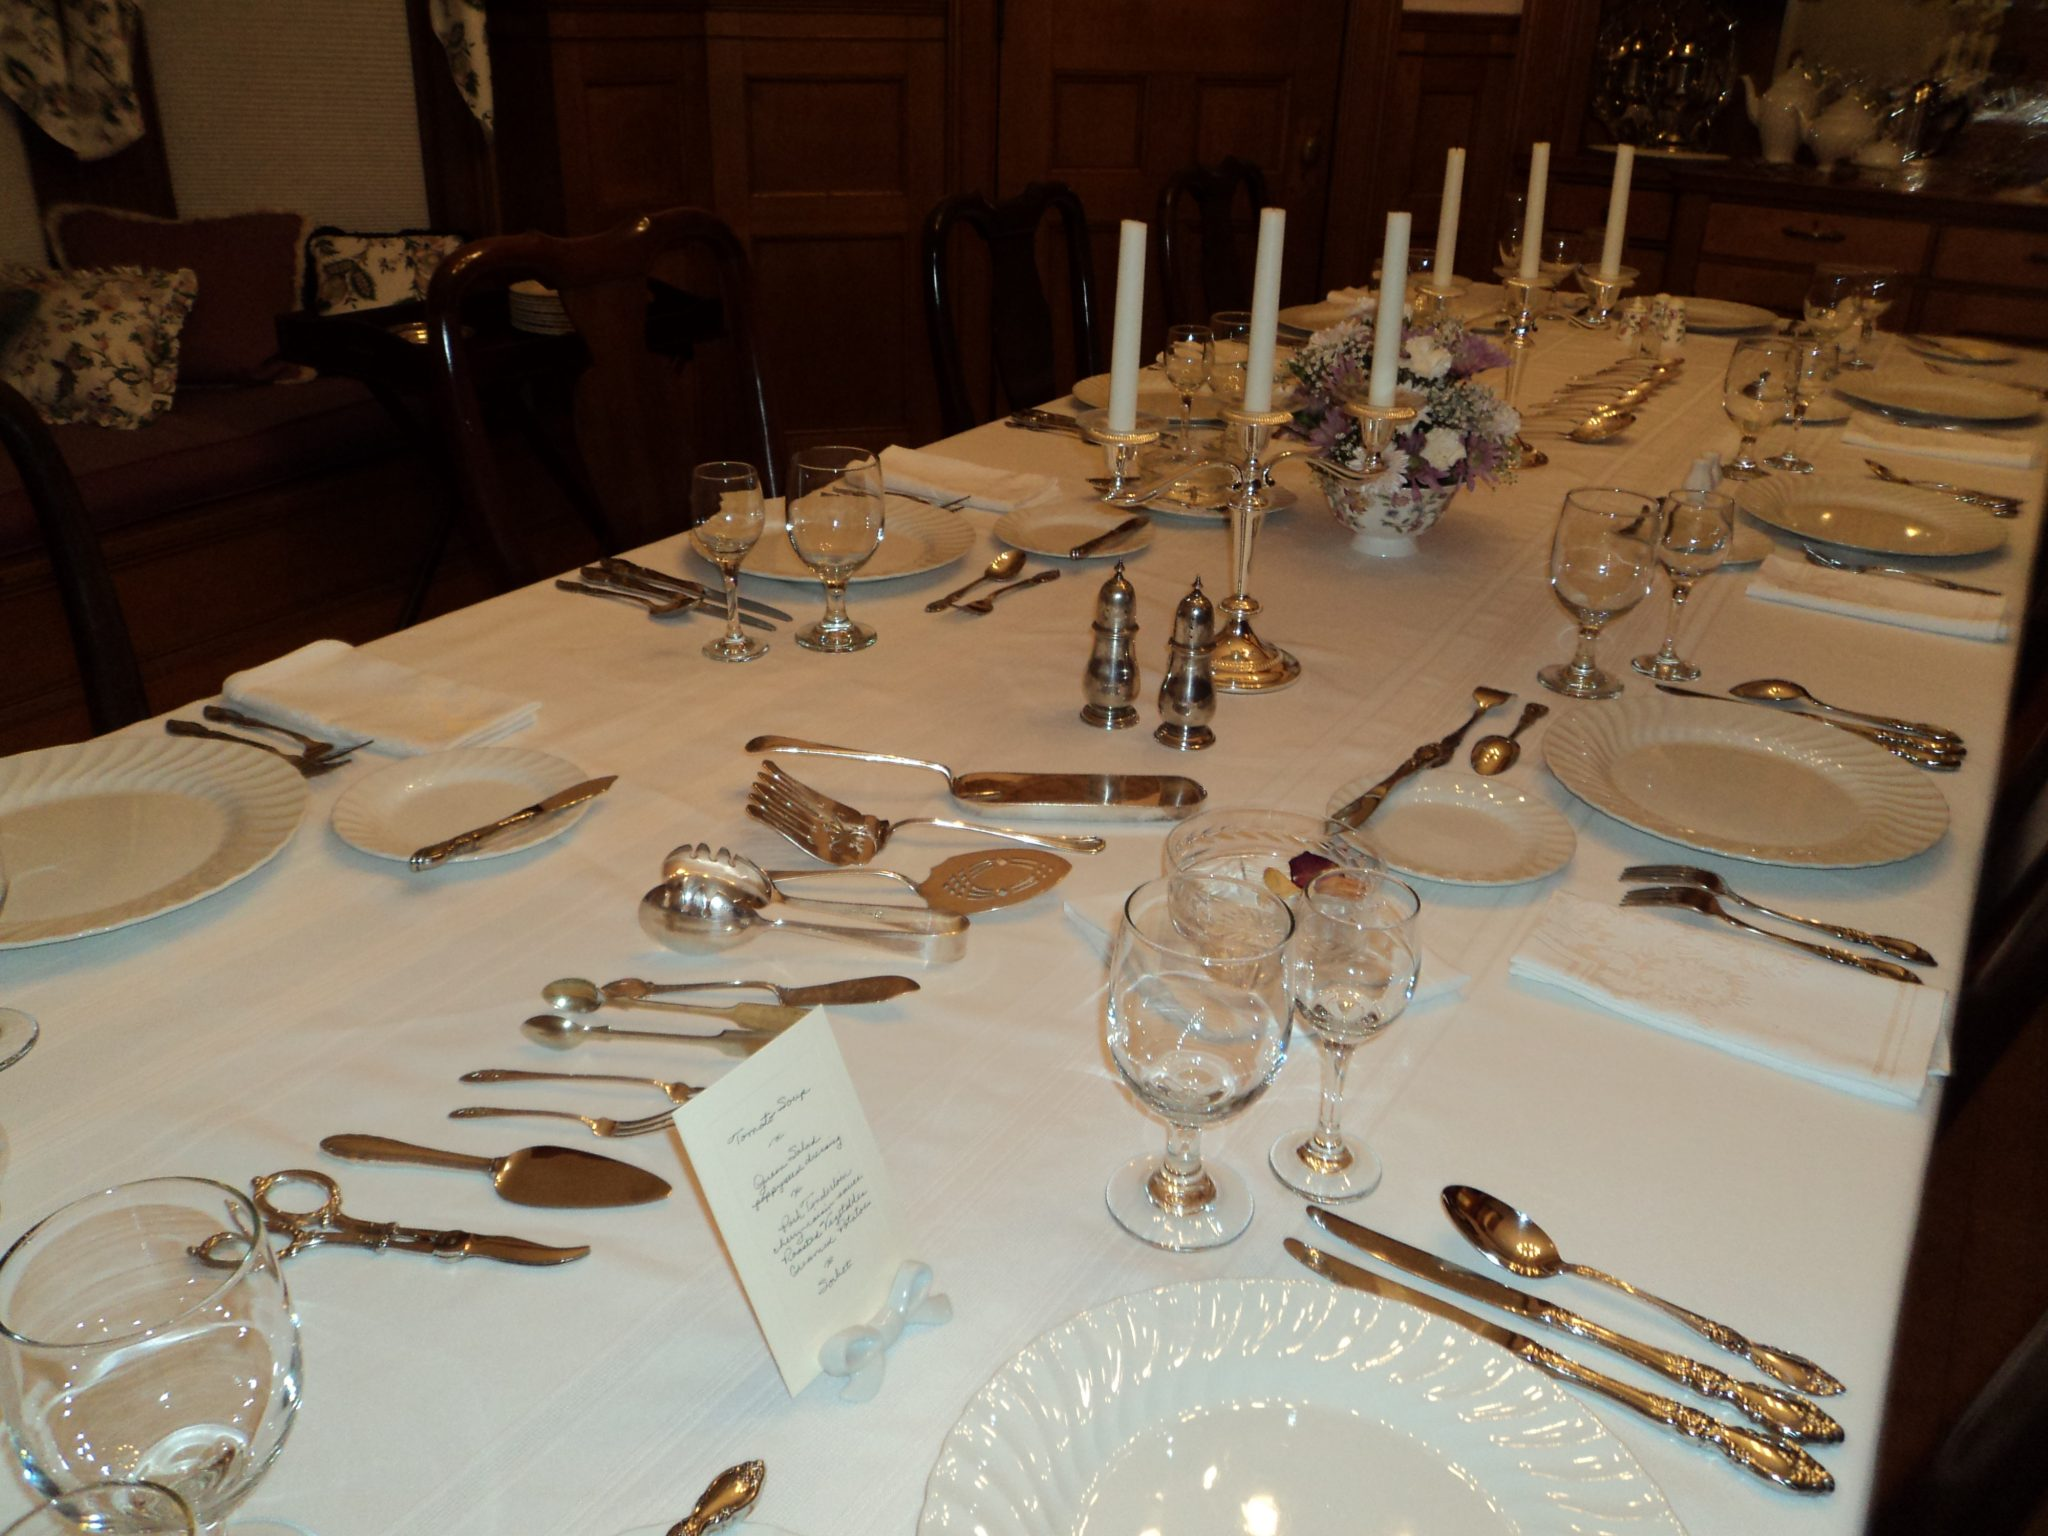 Downton abbey inspired dinner and etiquette talk part